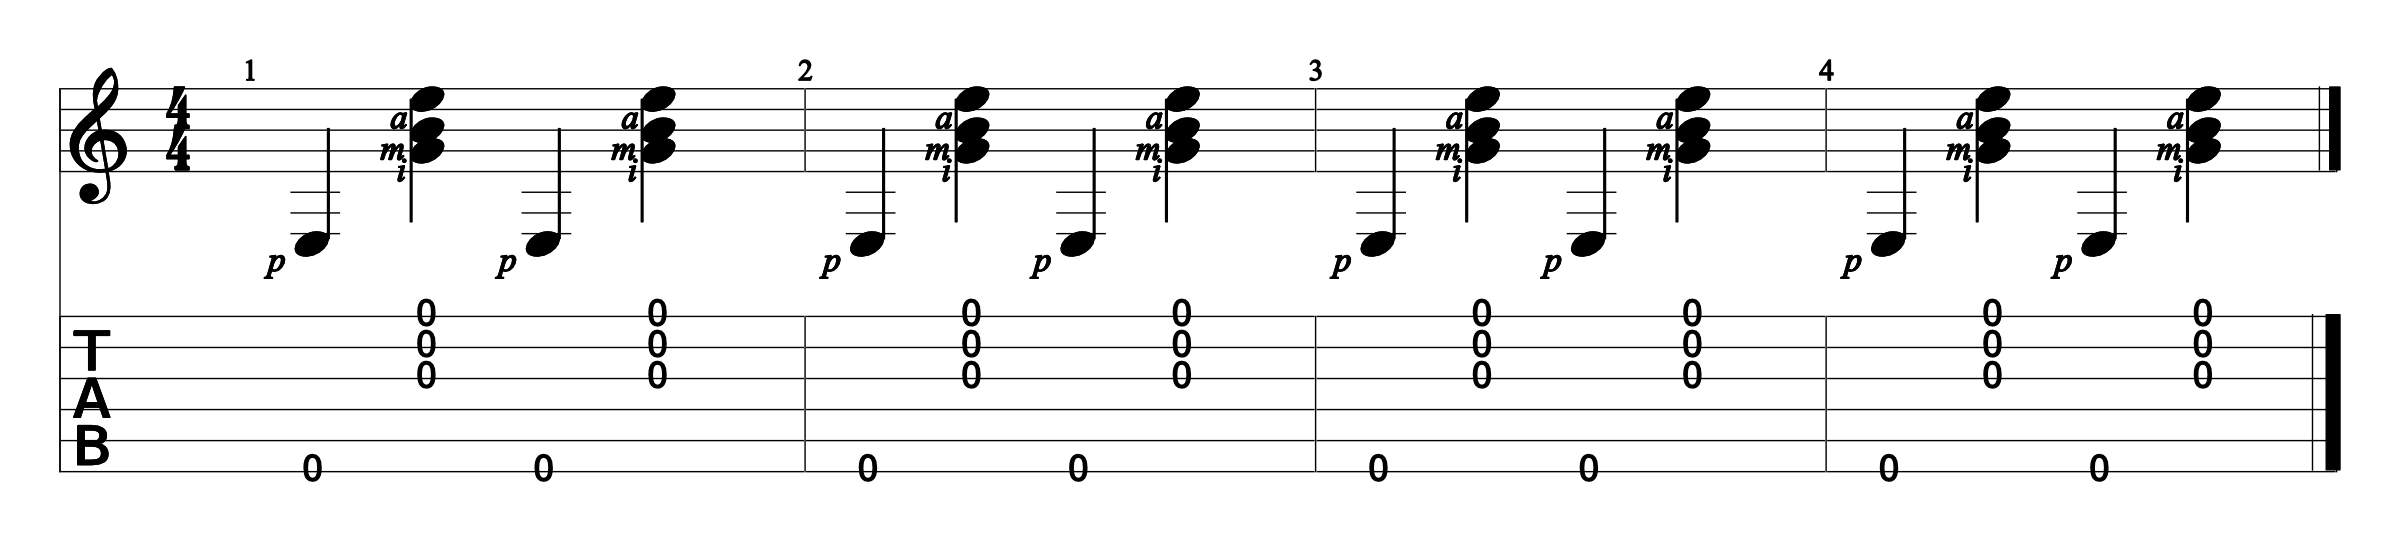 Fingerstyle Exercise